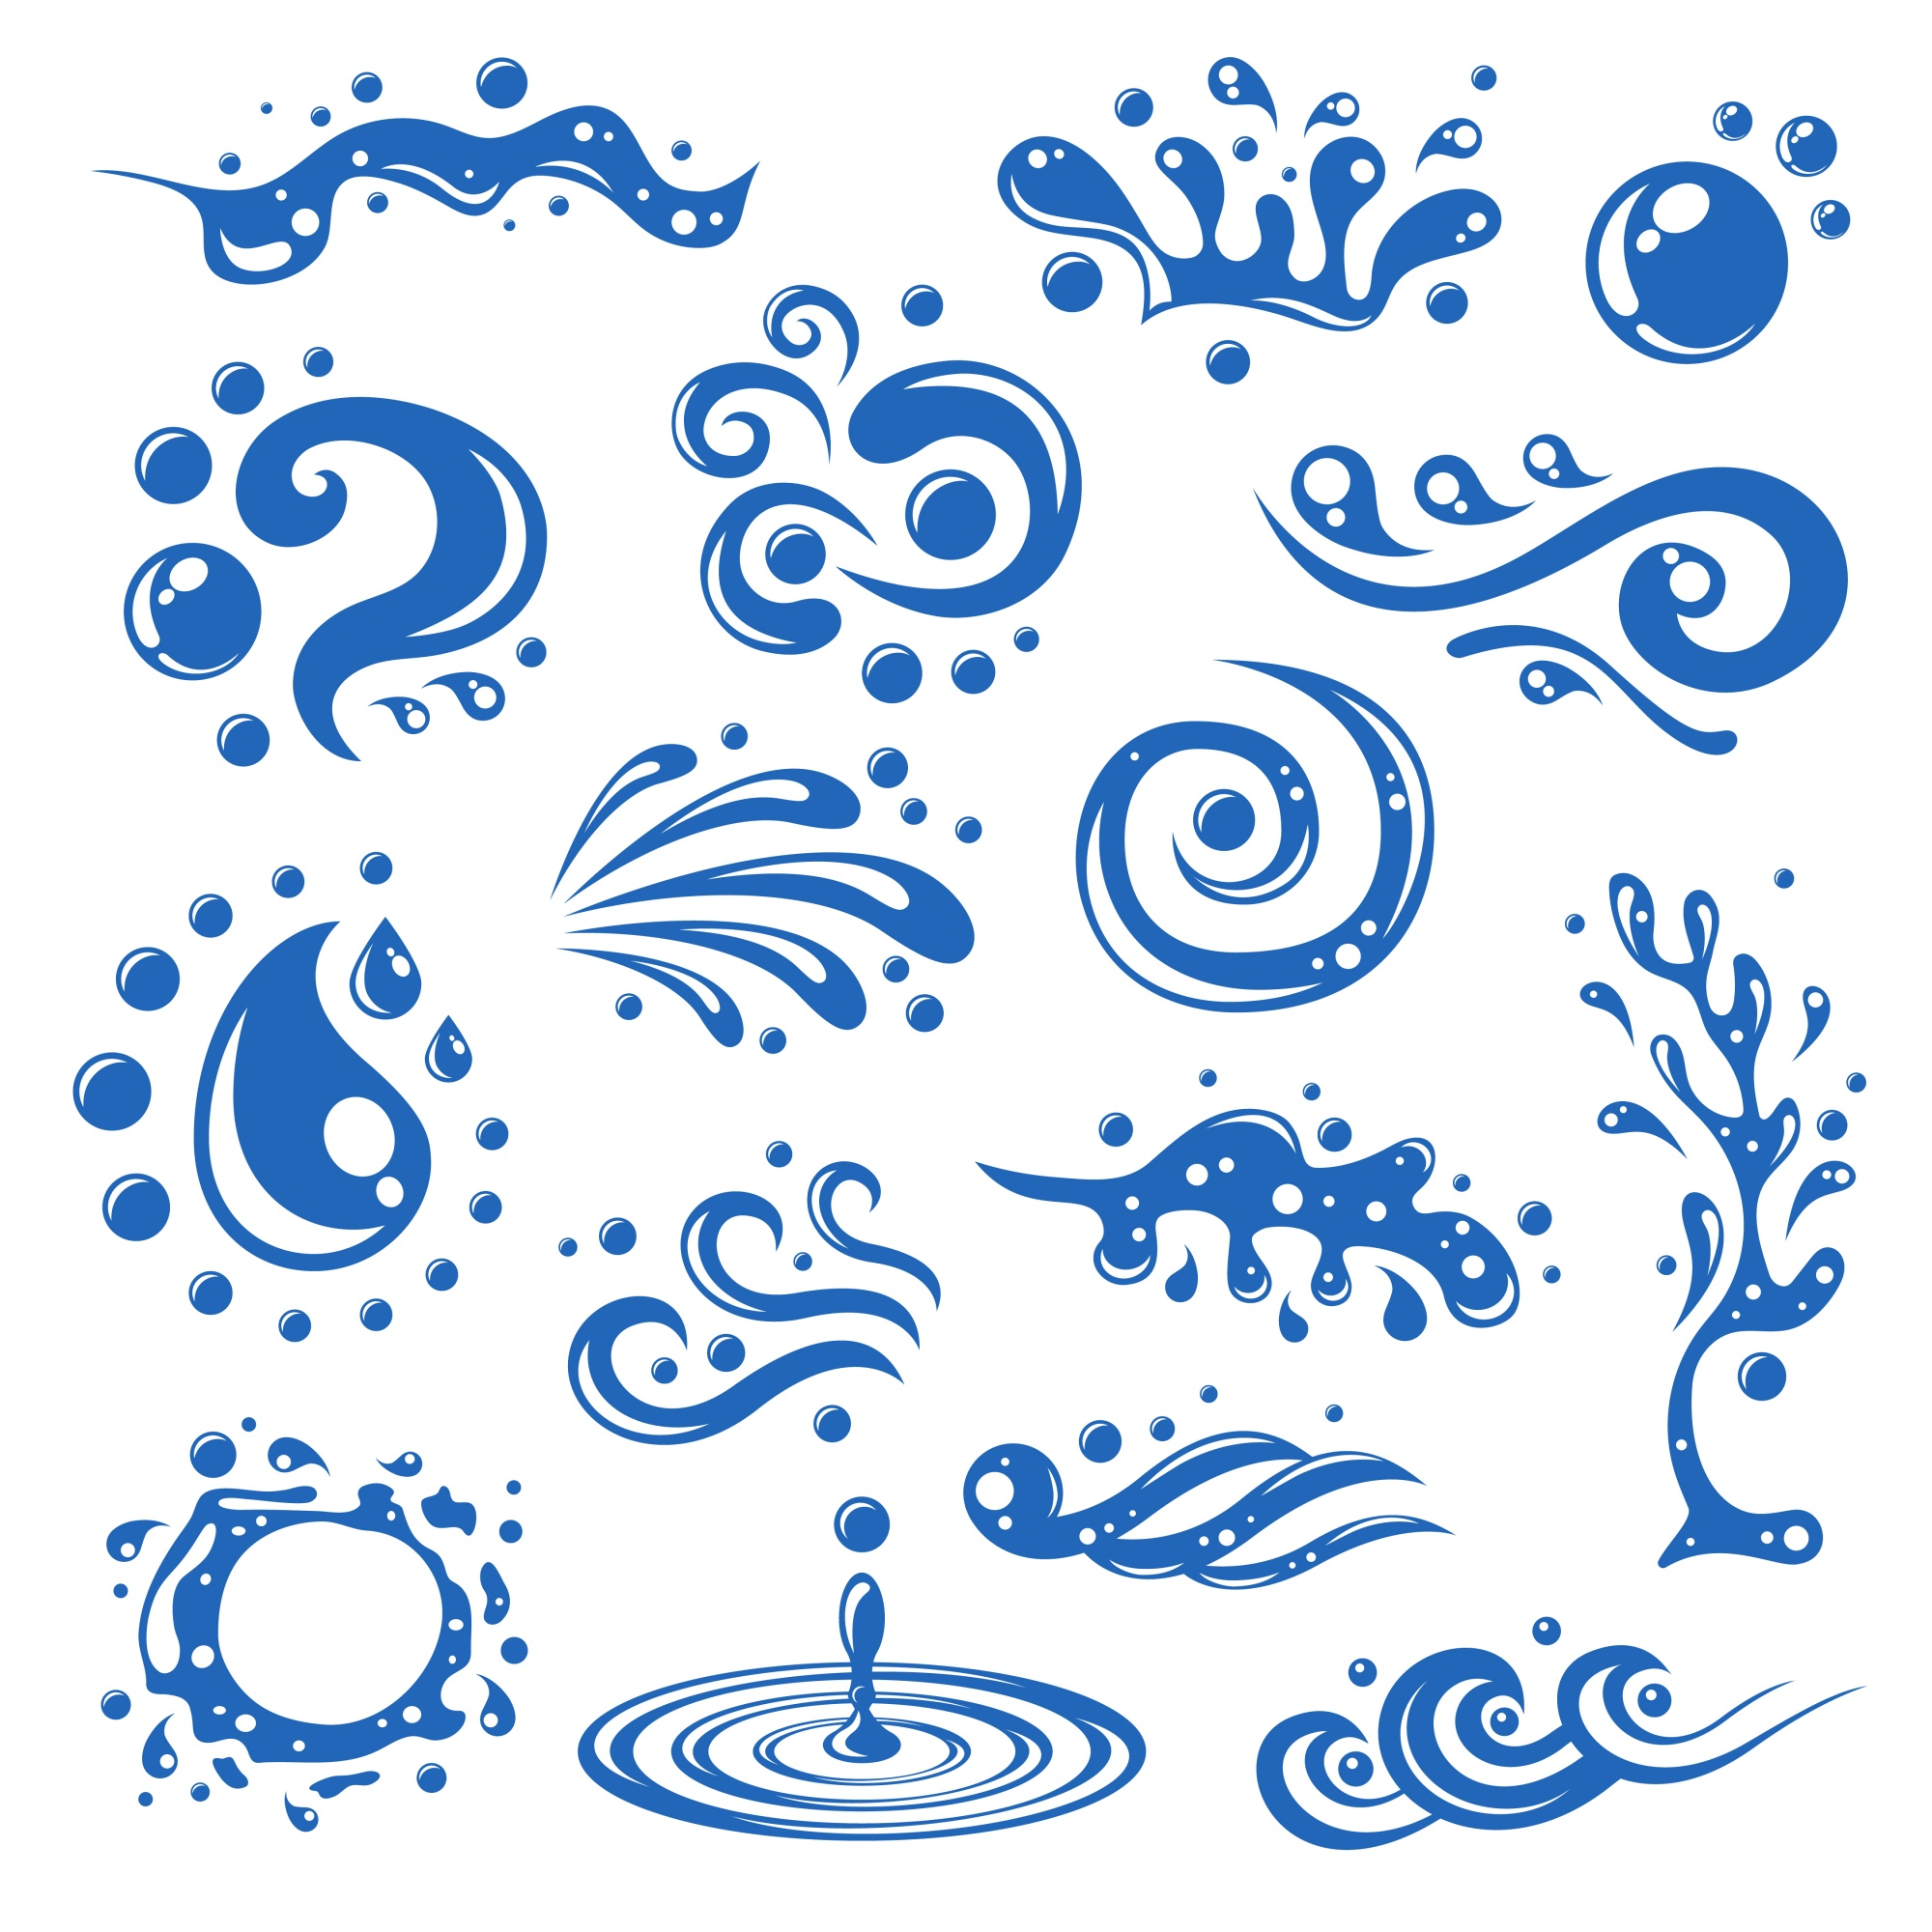 Blue water splashes waves drops blots decorative icons isolated vector illustration